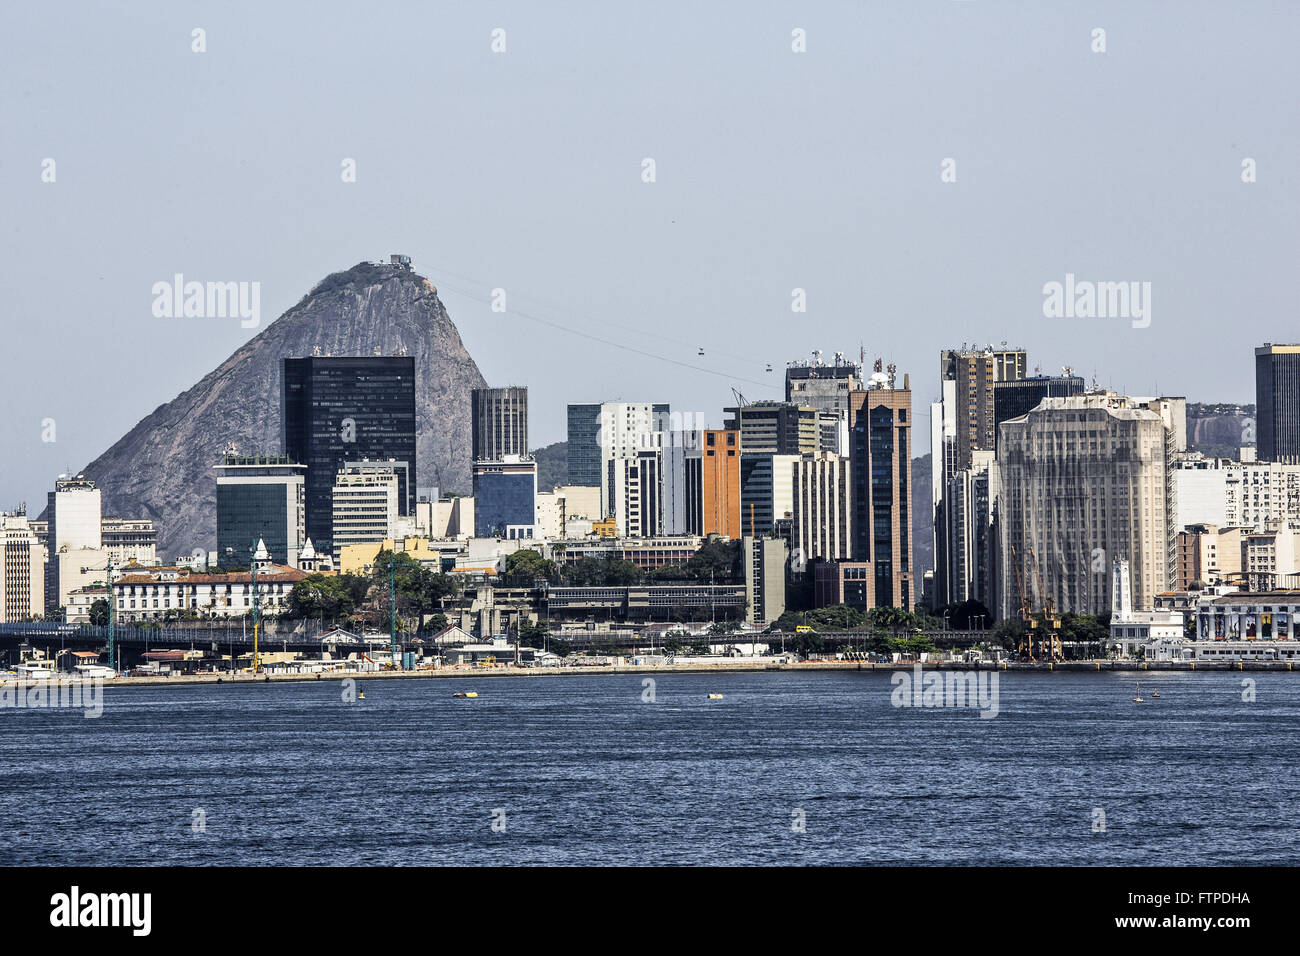 Buildings and Perimeter Flyover in the city center with Sugar Loaf in the background - Stock Image